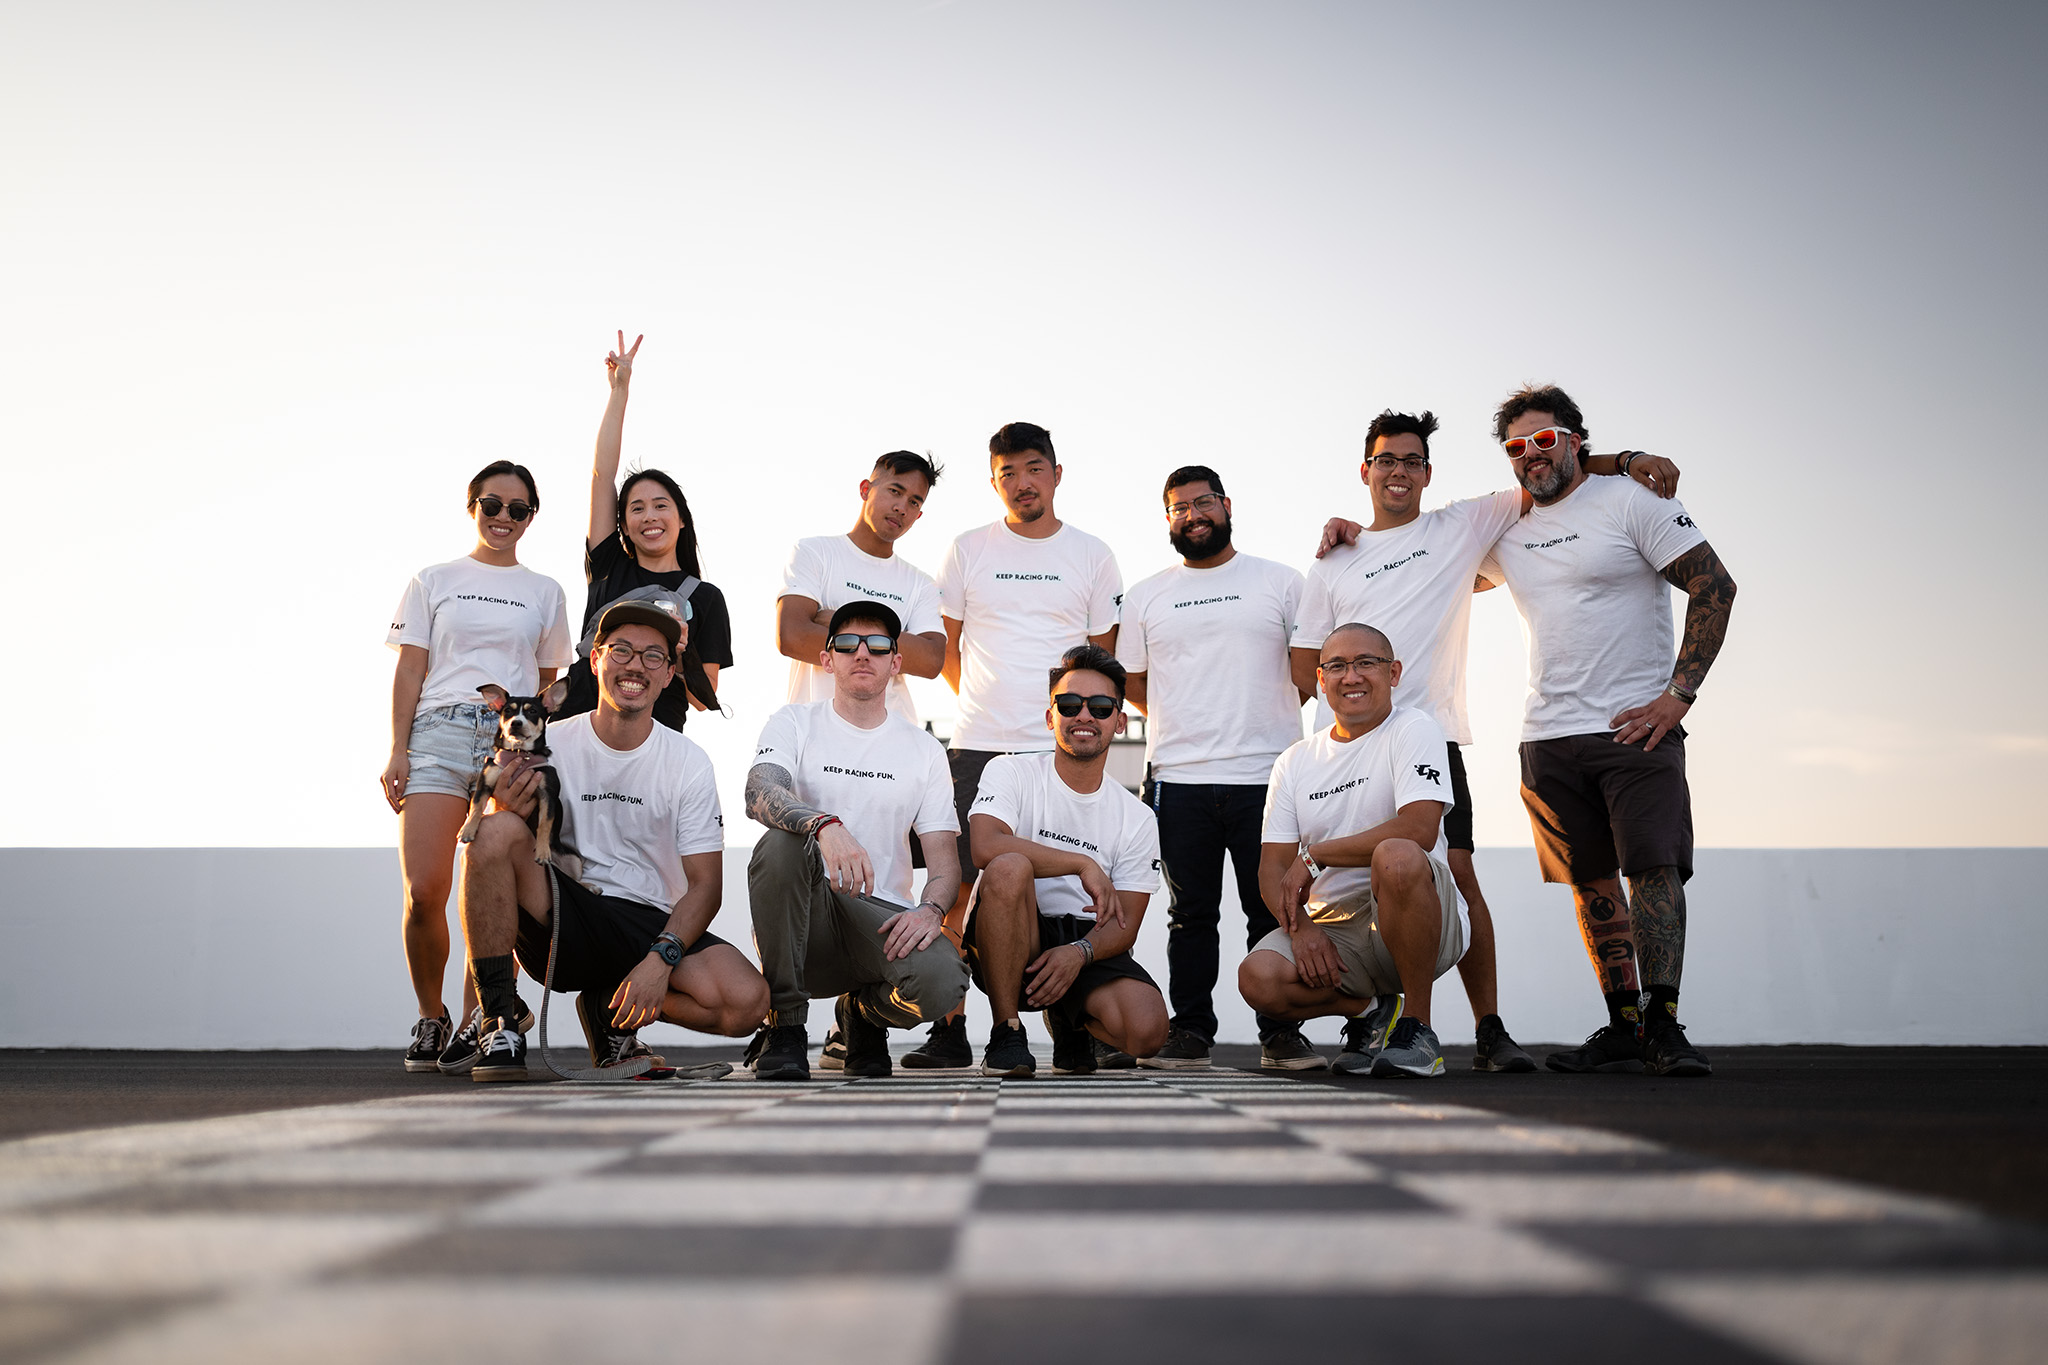 Club Racer Events, VTEC Club, RS future, Narita Dogfight, and Late Brake Coffee staff at Chuckwalla Valley Raceway in California, motorsports photography by Luke Munnell